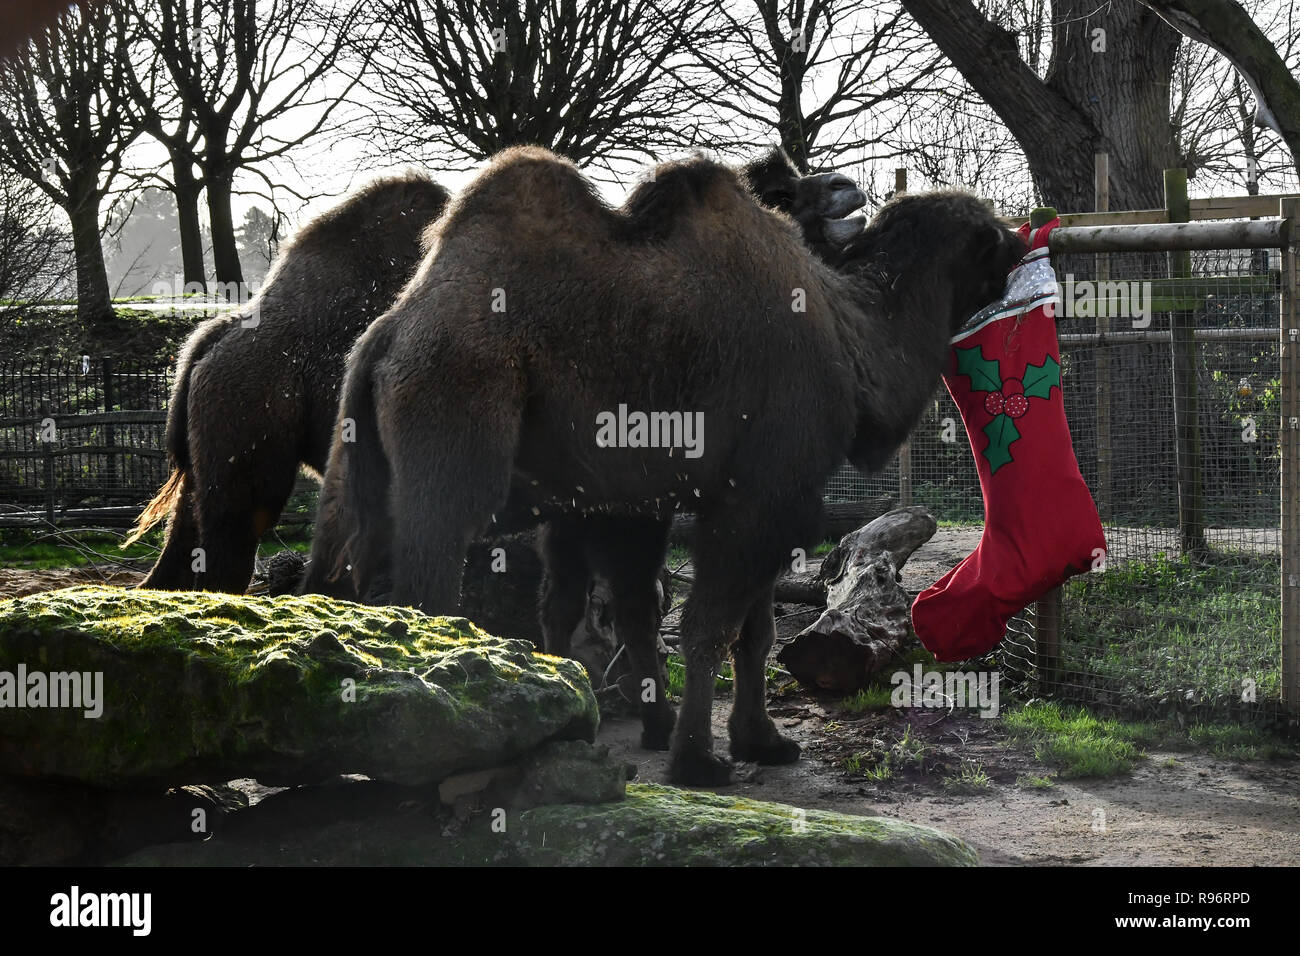 London, UK. 201th Dec, 2018. Lions, gorillas and camels enjoy festive treats Advent-ures this Christmas at ZSL London Zoo on 20 December 2018, London, UK. Credit: Picture Capital/Alamy Live News - Stock Image